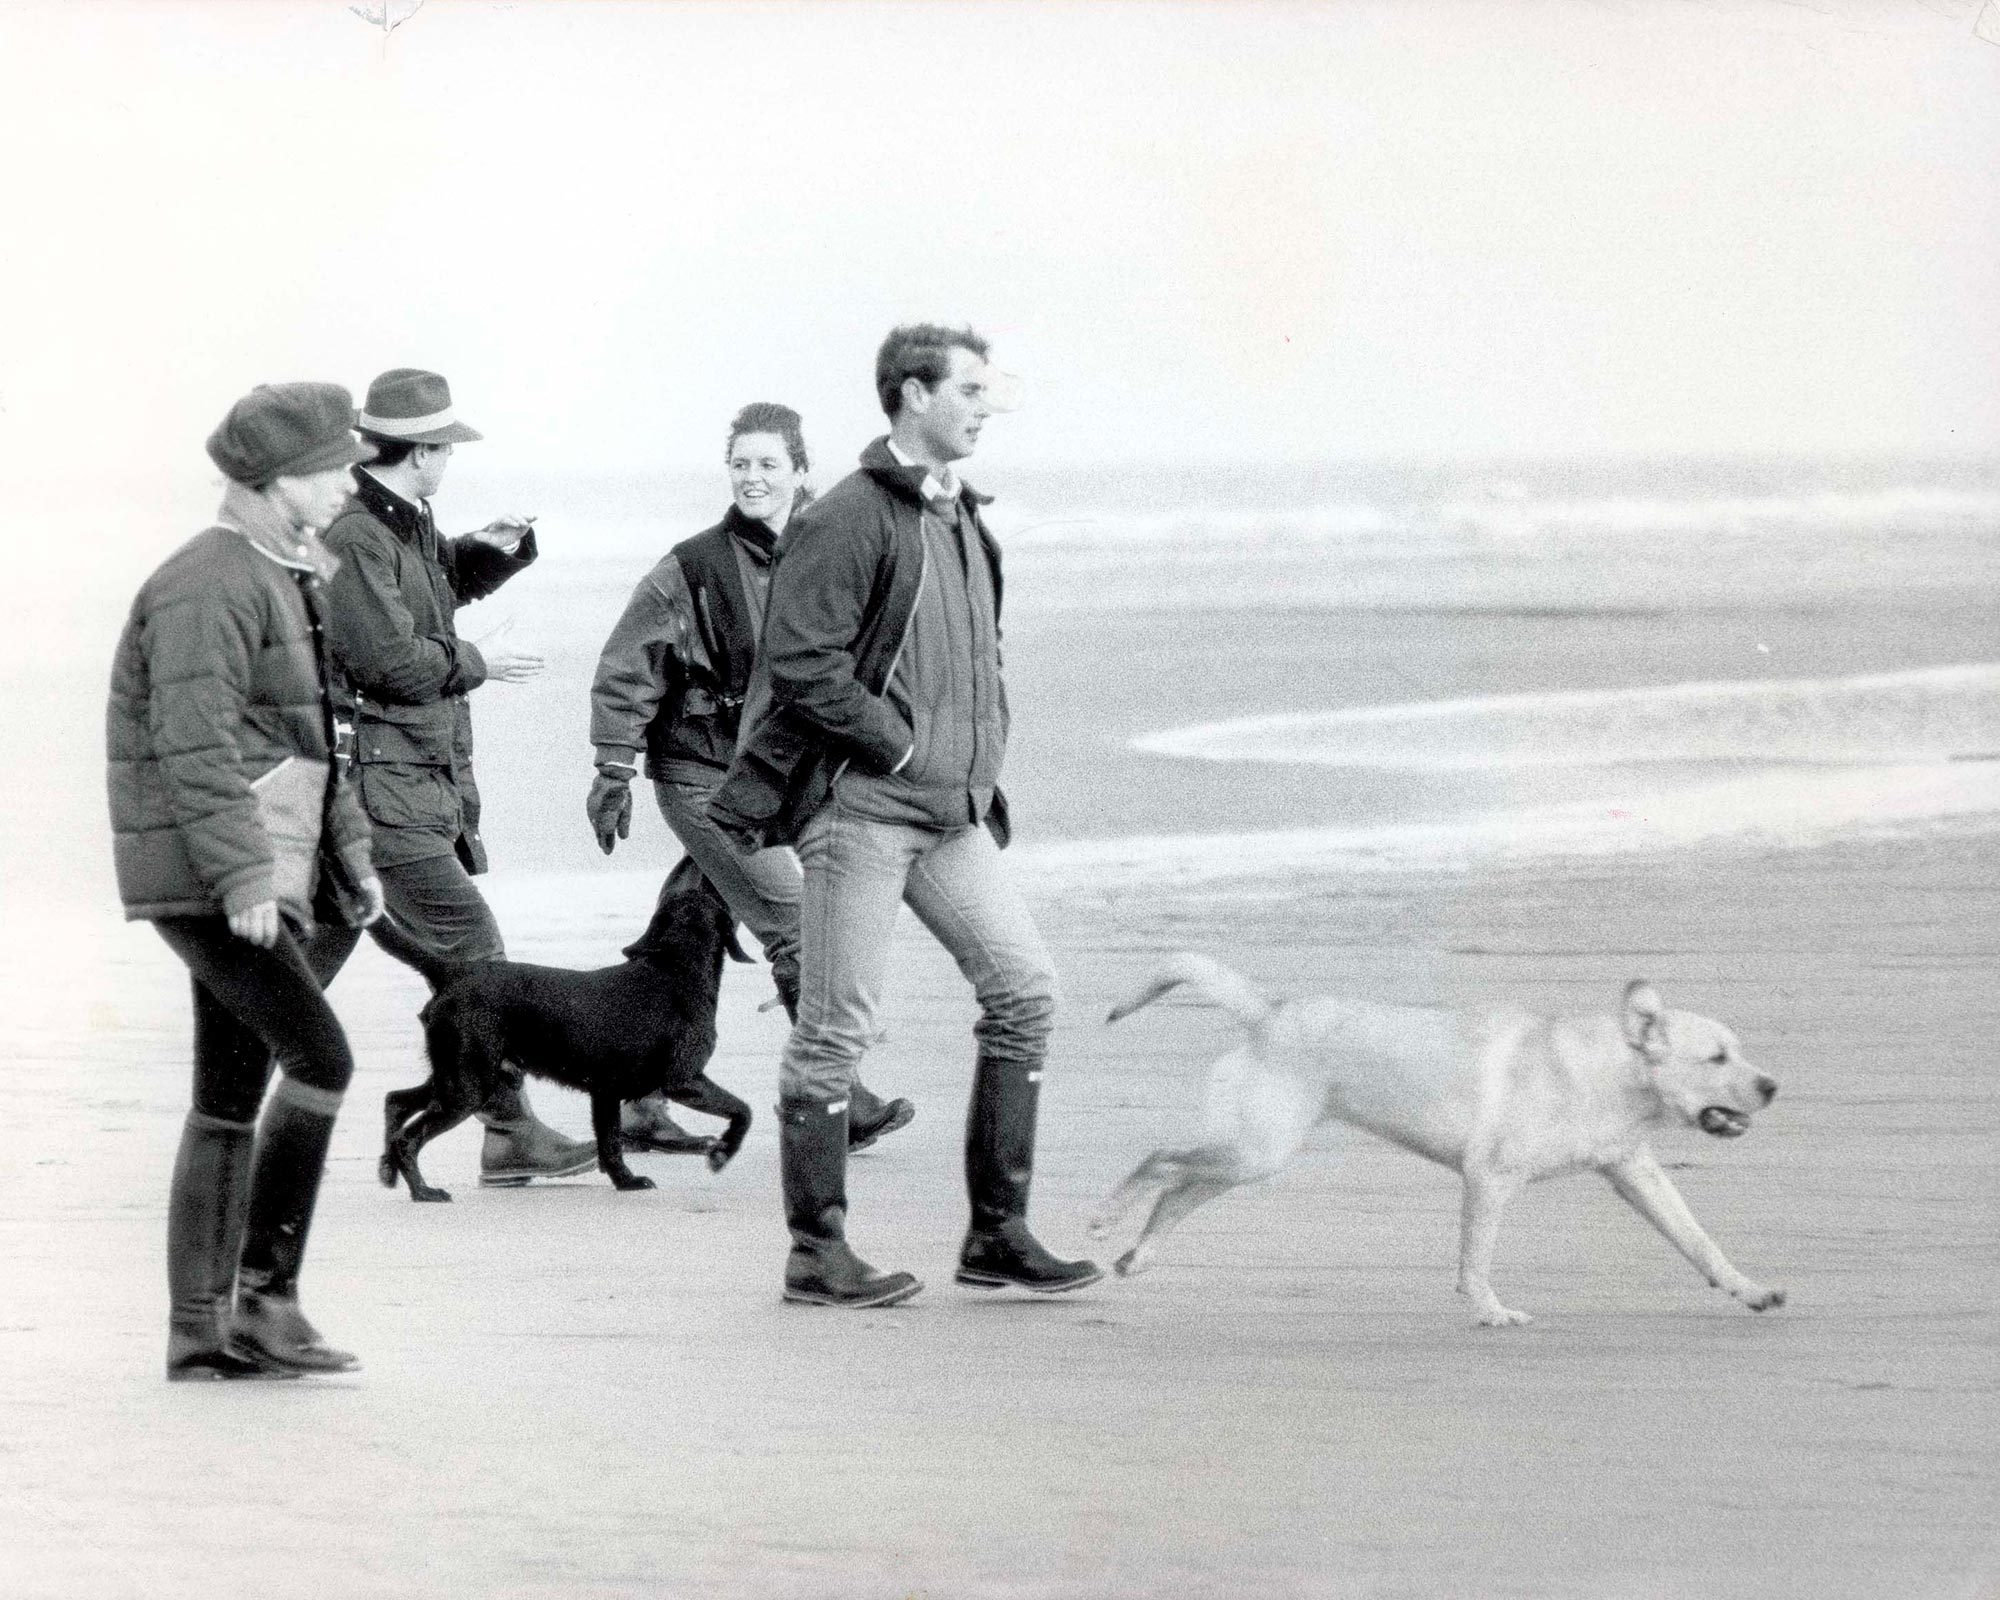 Princess Anne plus others on beach